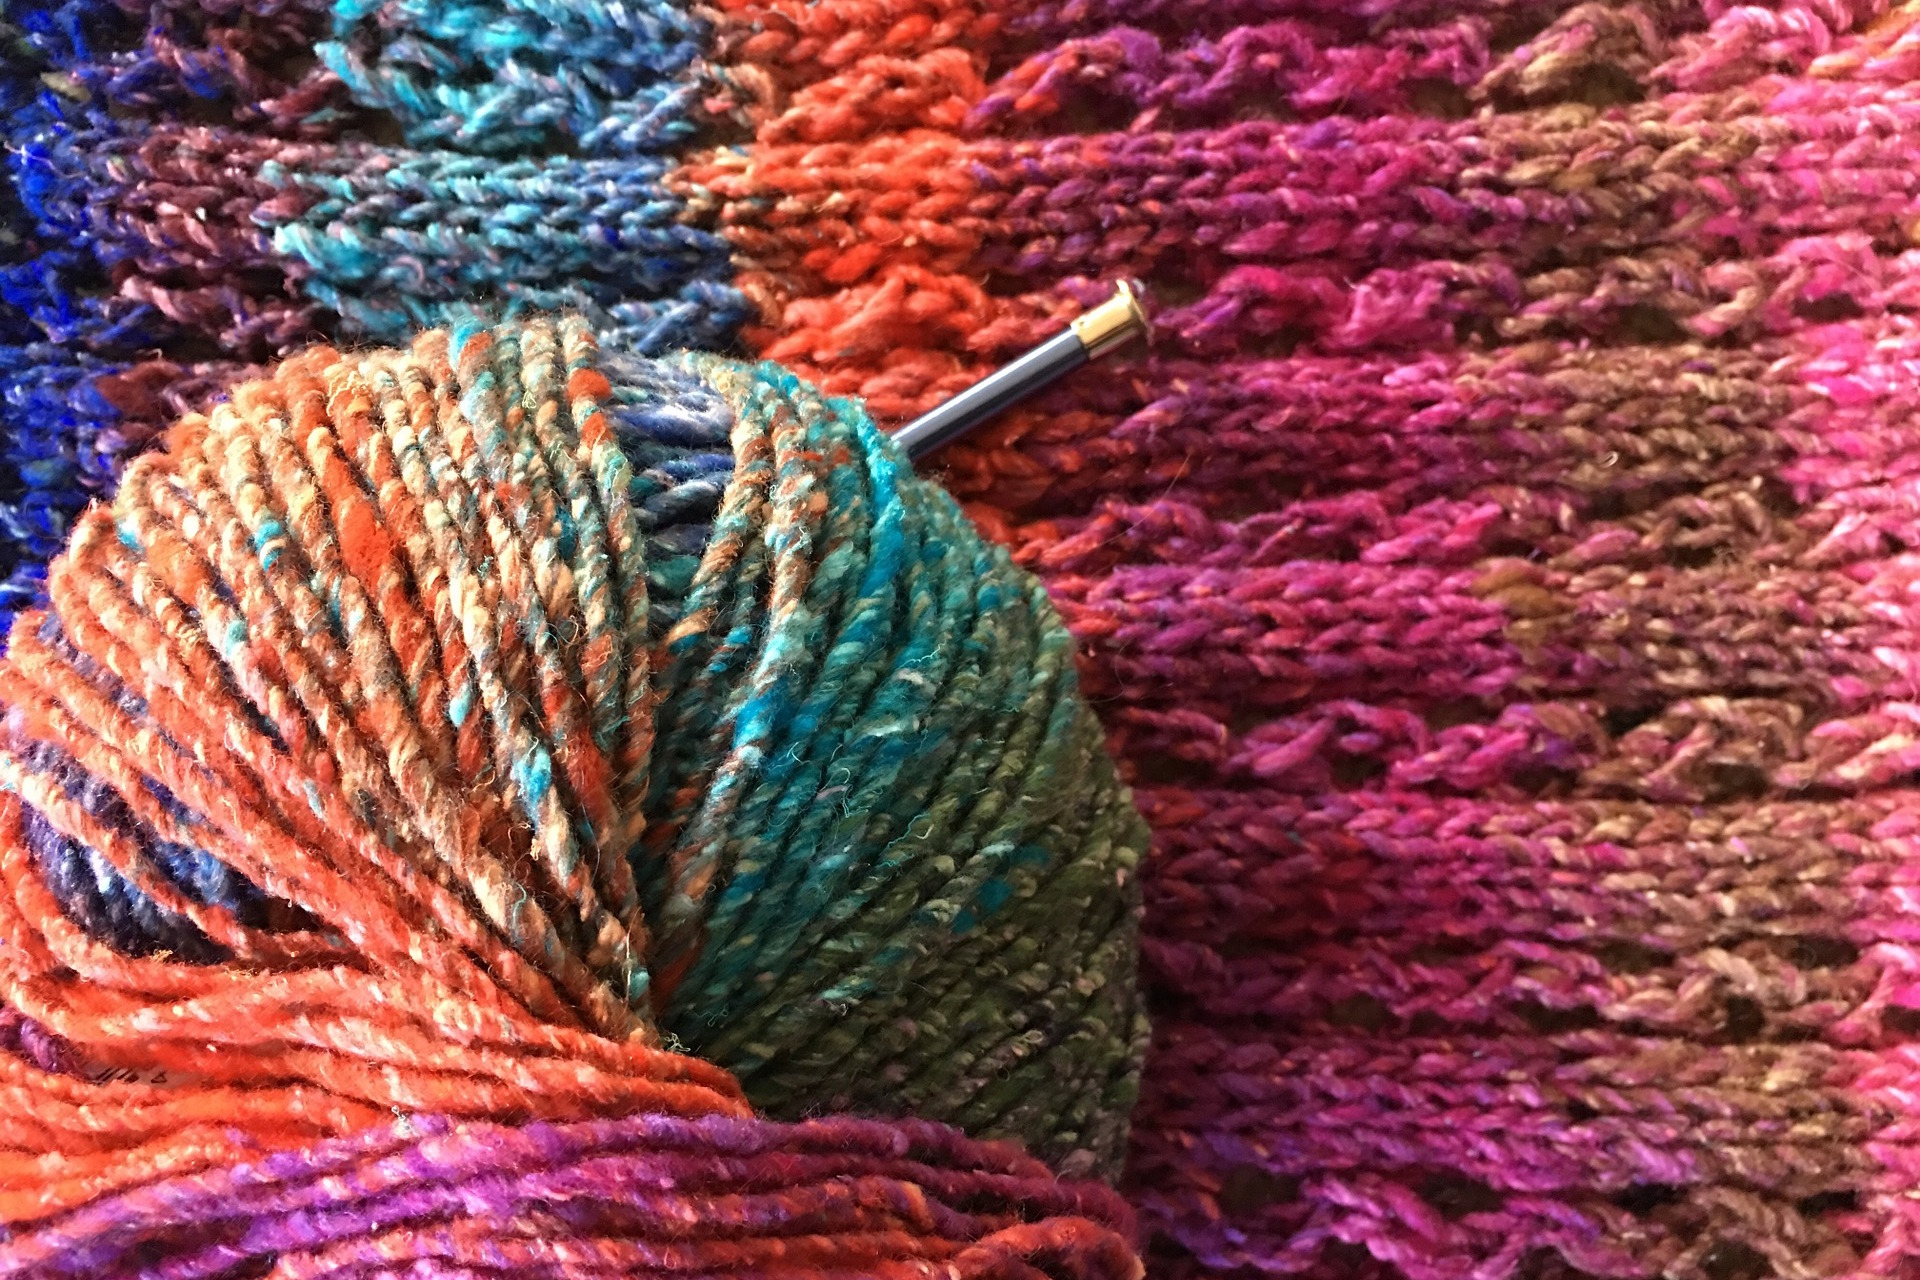 Knitted fabric and skein of yarn